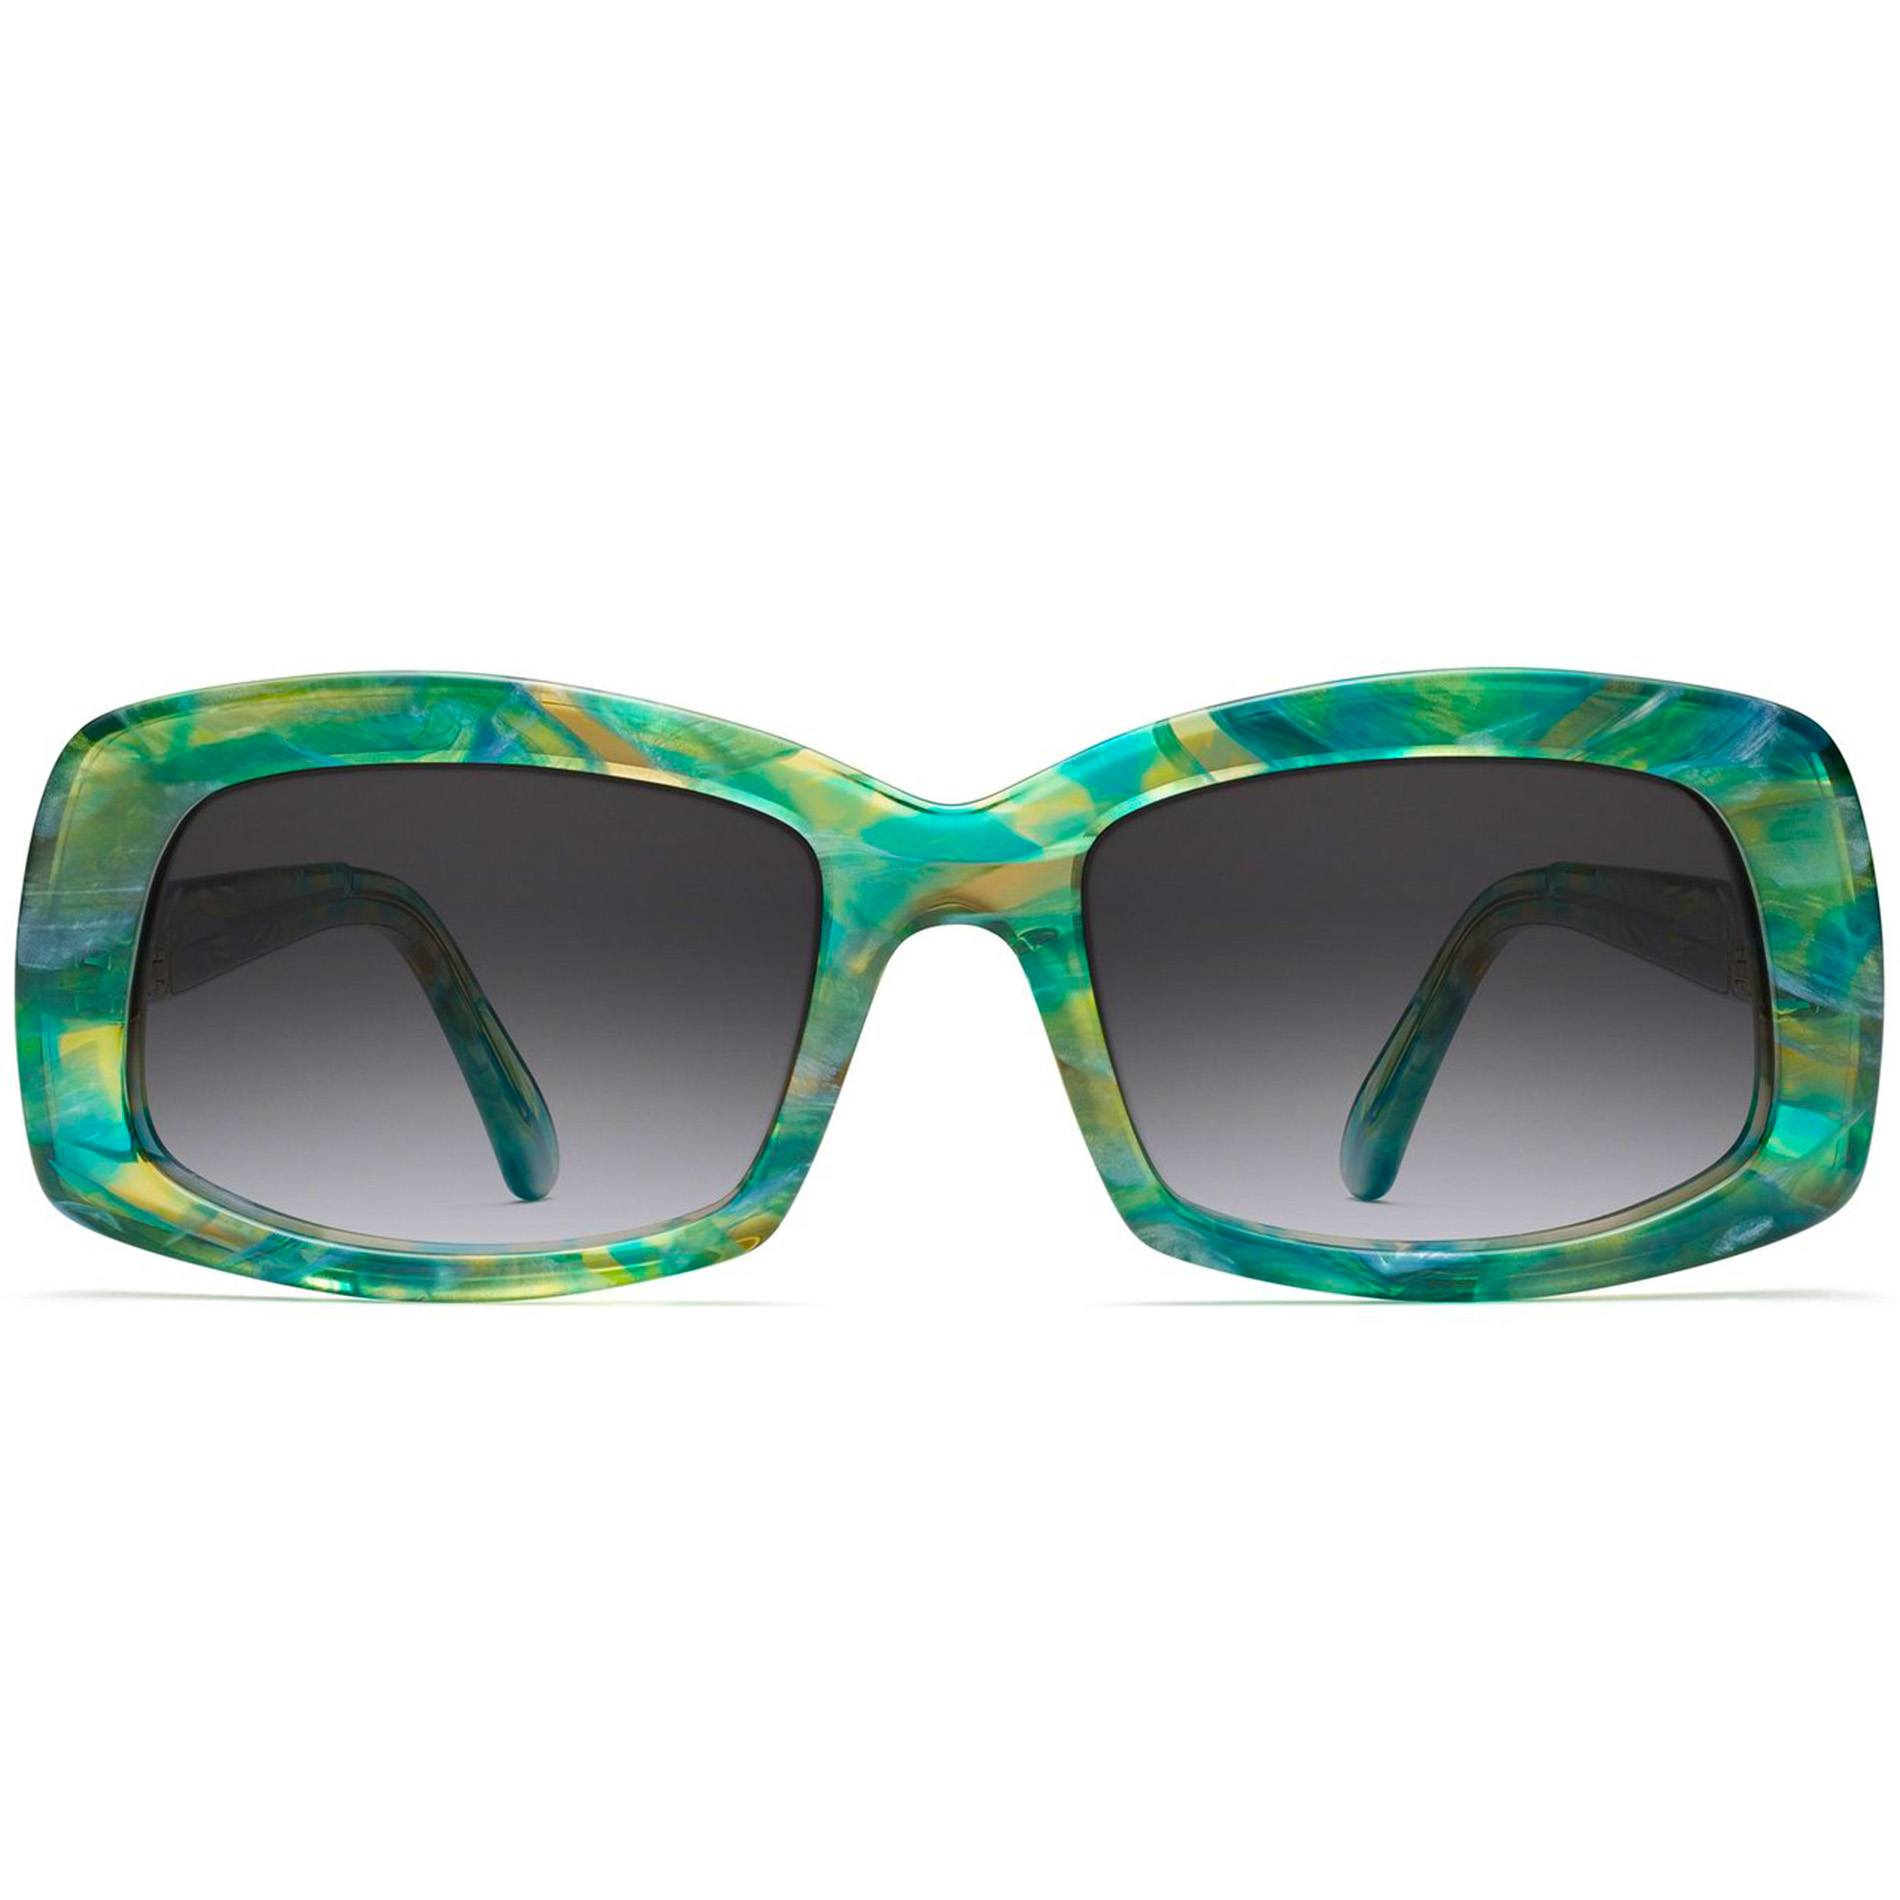 Carmen Sunglasses in acetate Teal from the Classic Series by Morgenthal Frederics